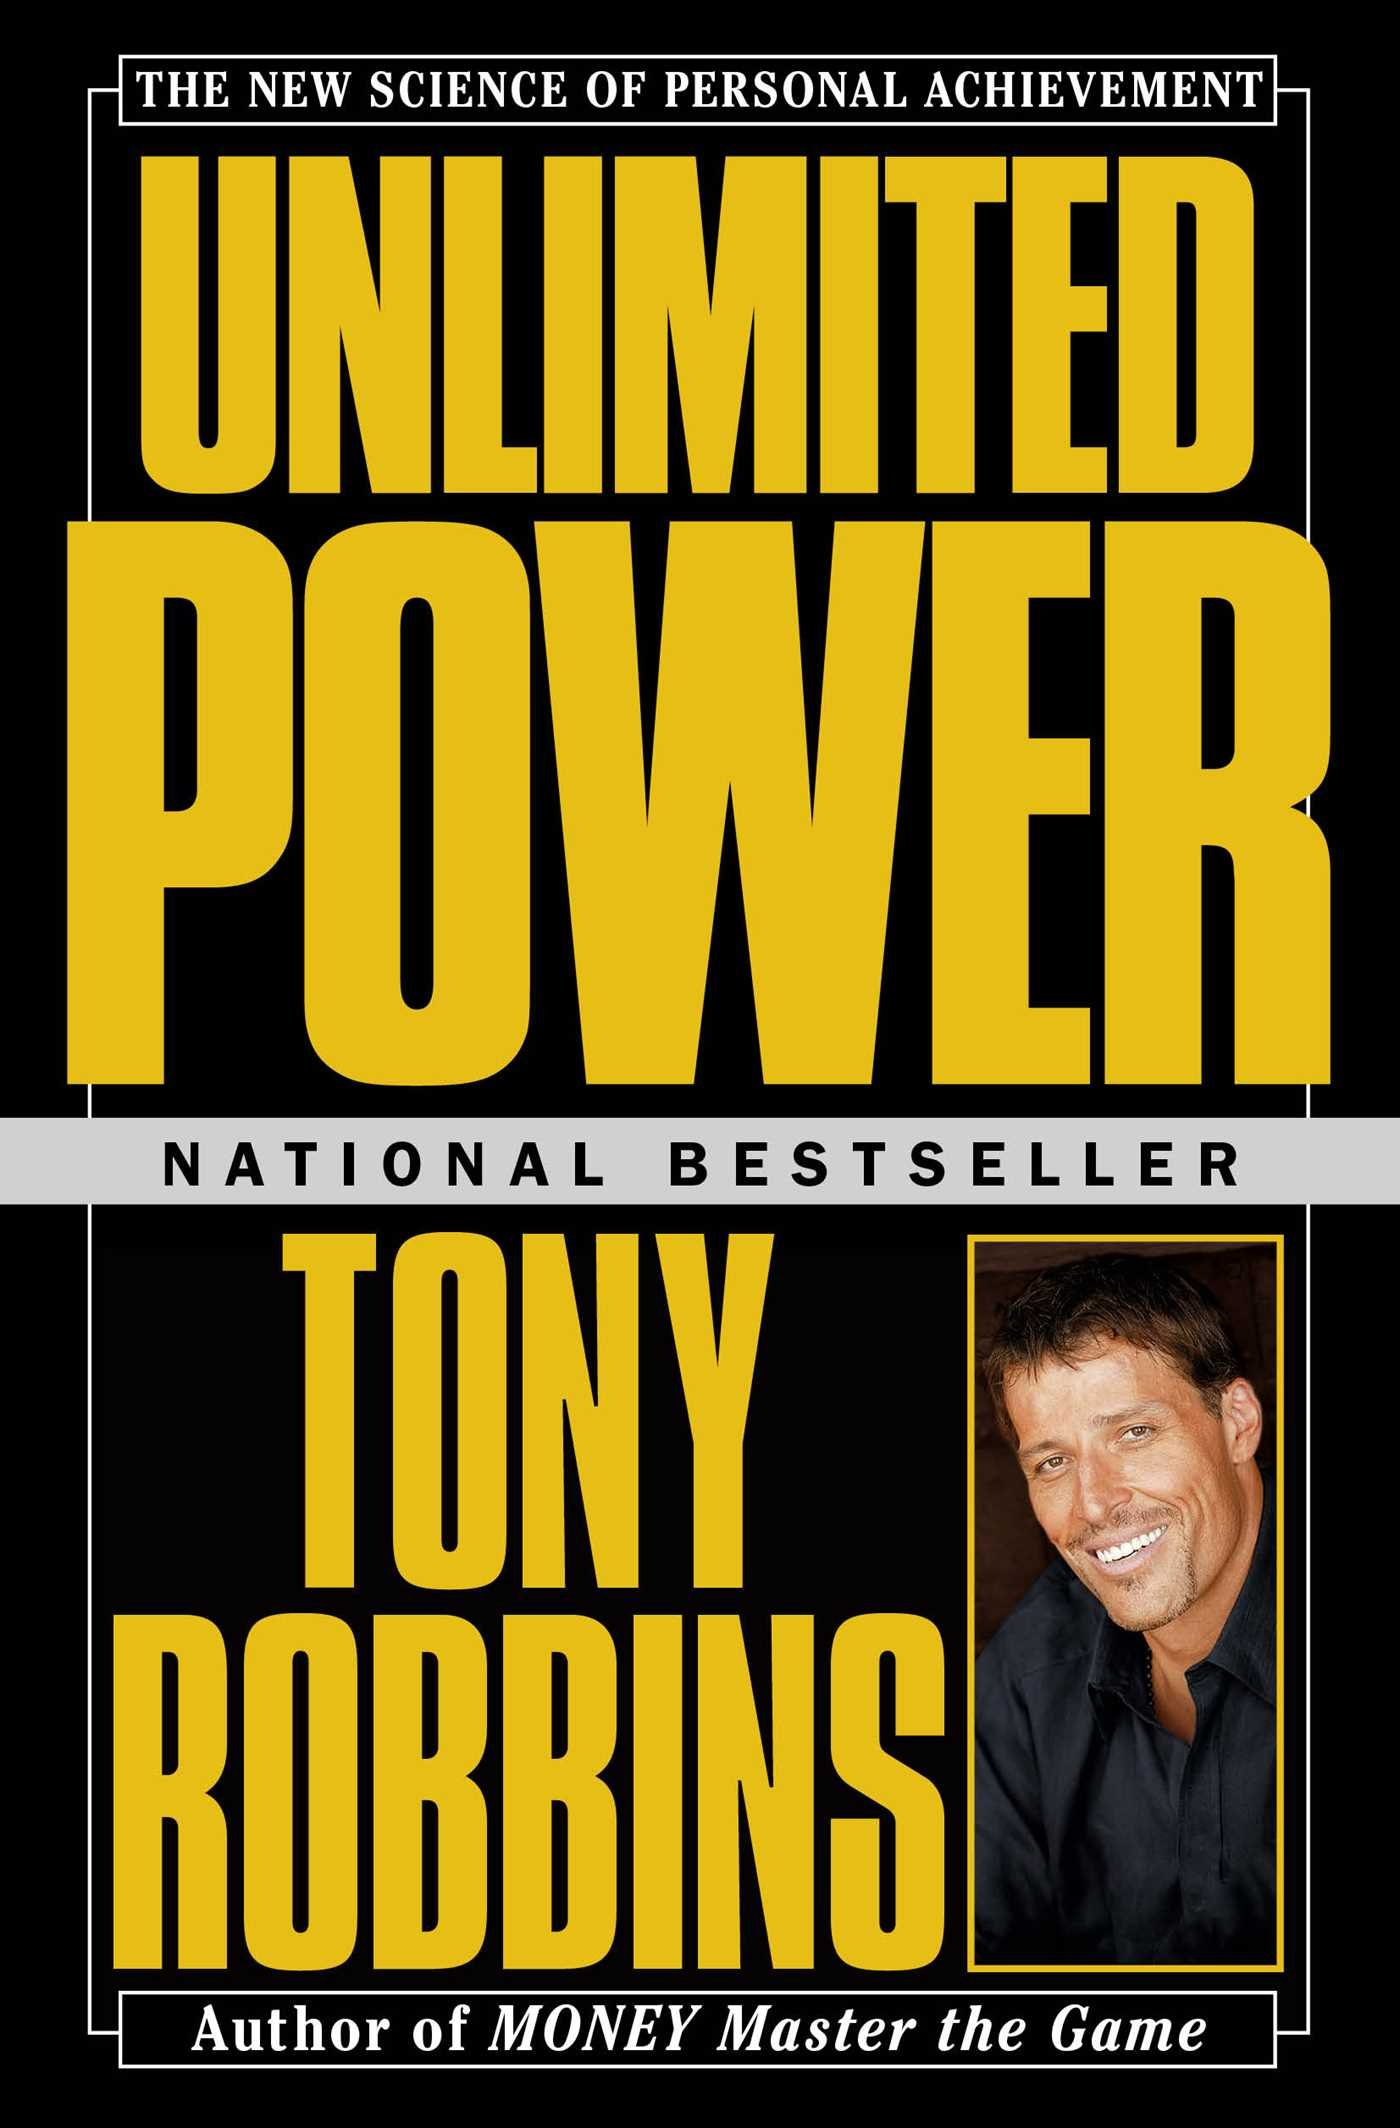 Unlimited Power: The New Science of Personal Achievement ISBN-13 9780684845777